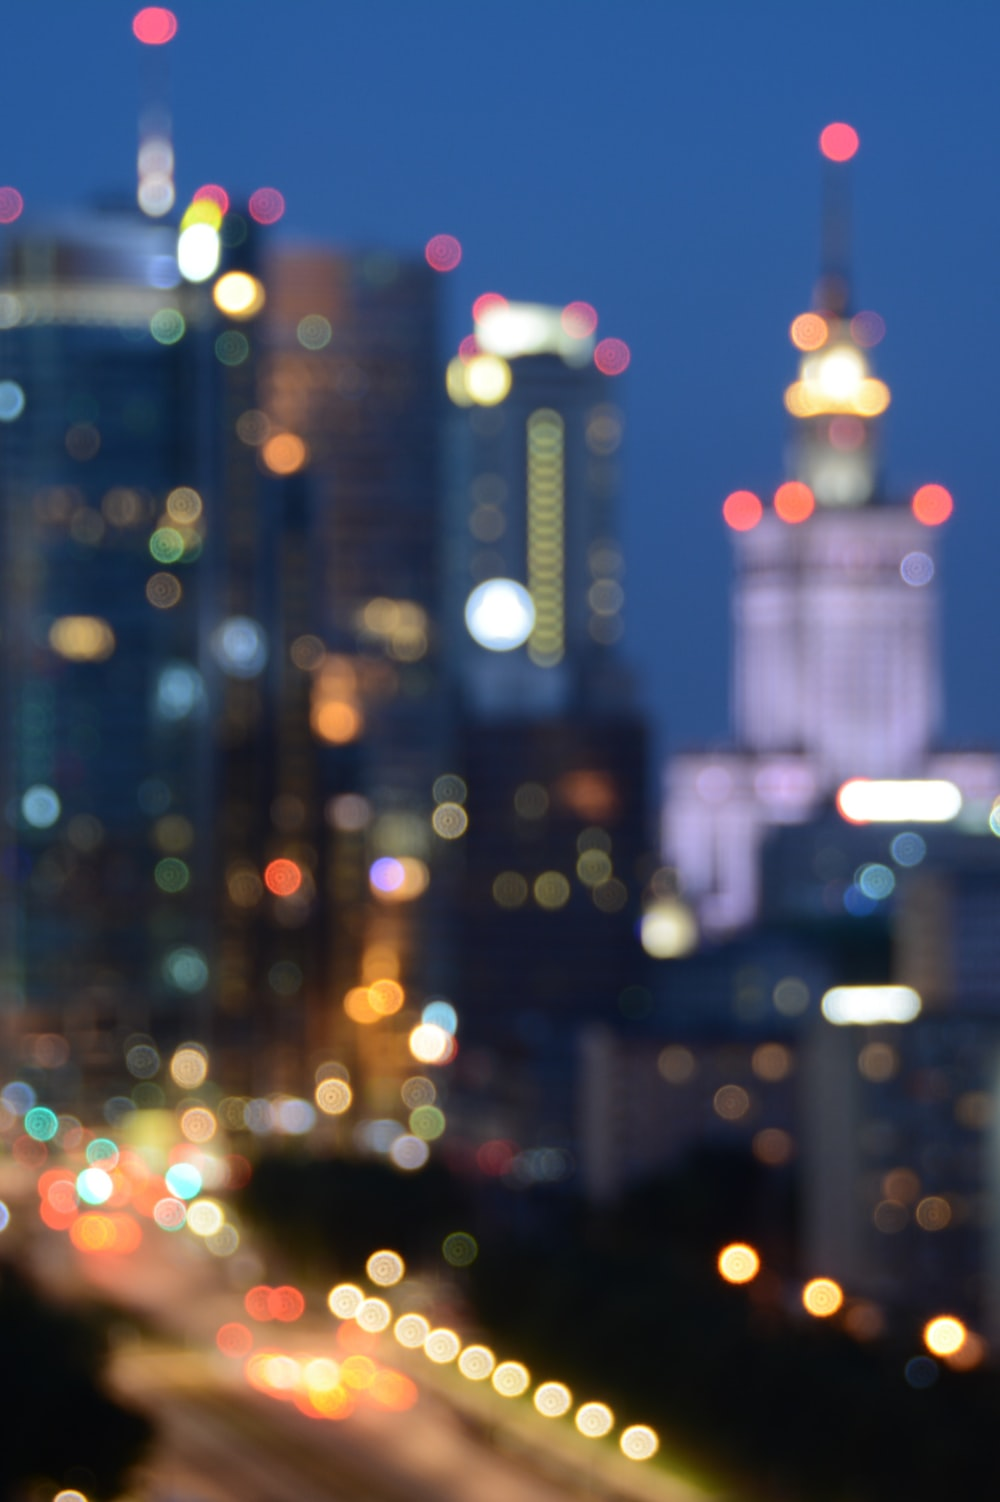 bokeh photography of high-rise buildings